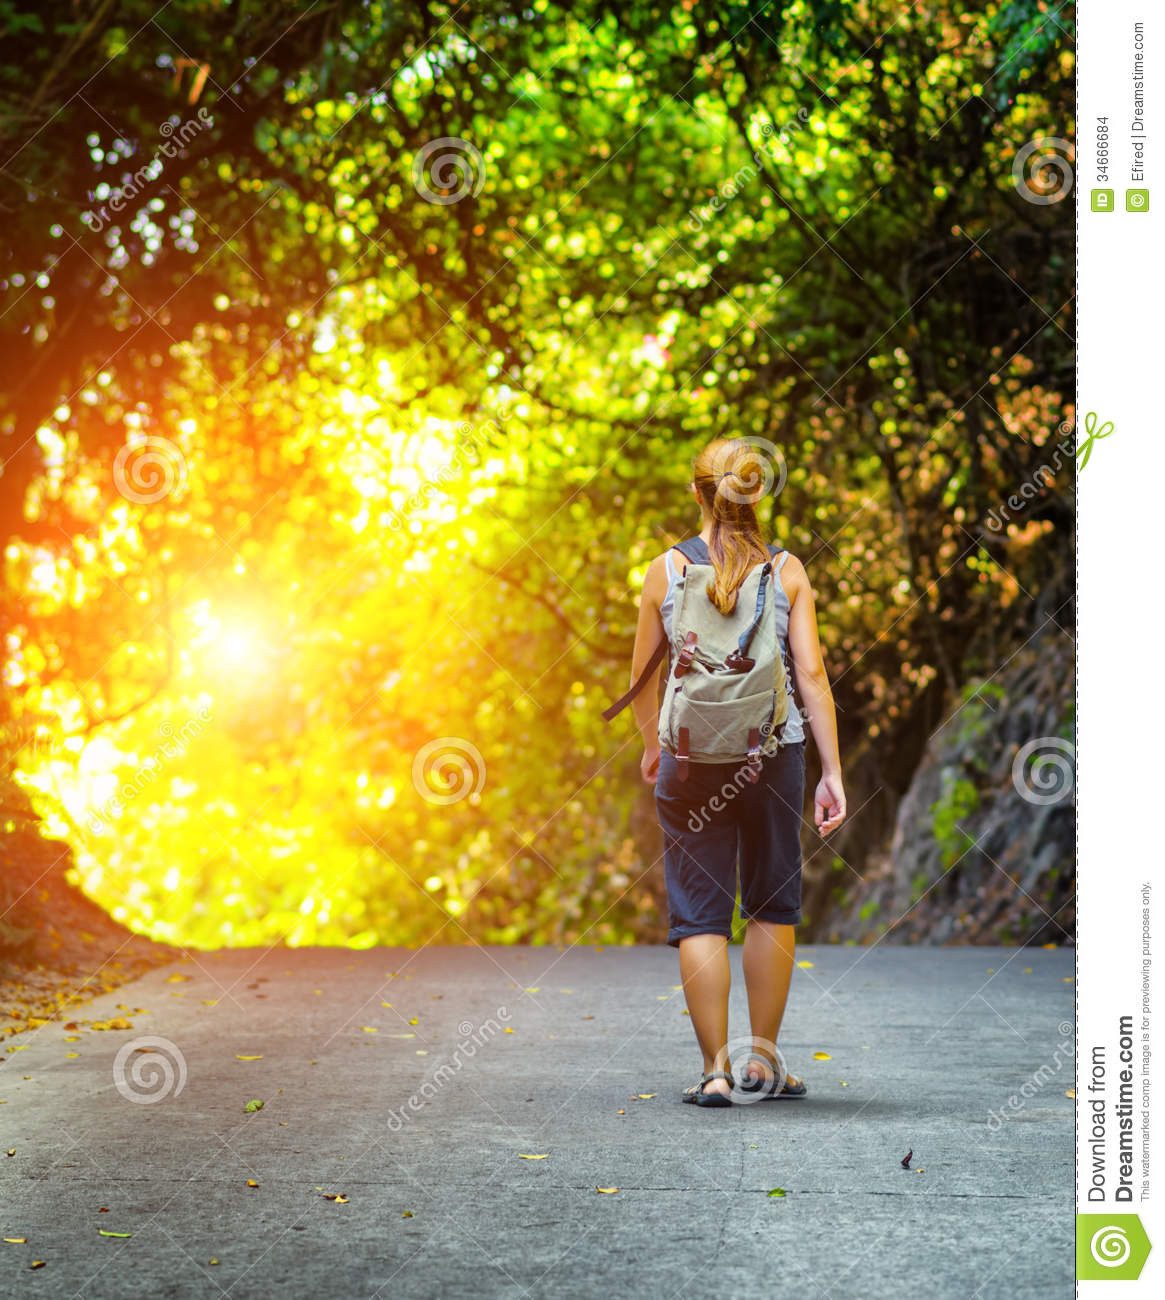 Young Woman Hiking With Backpack Stock Images - Image: 34666684